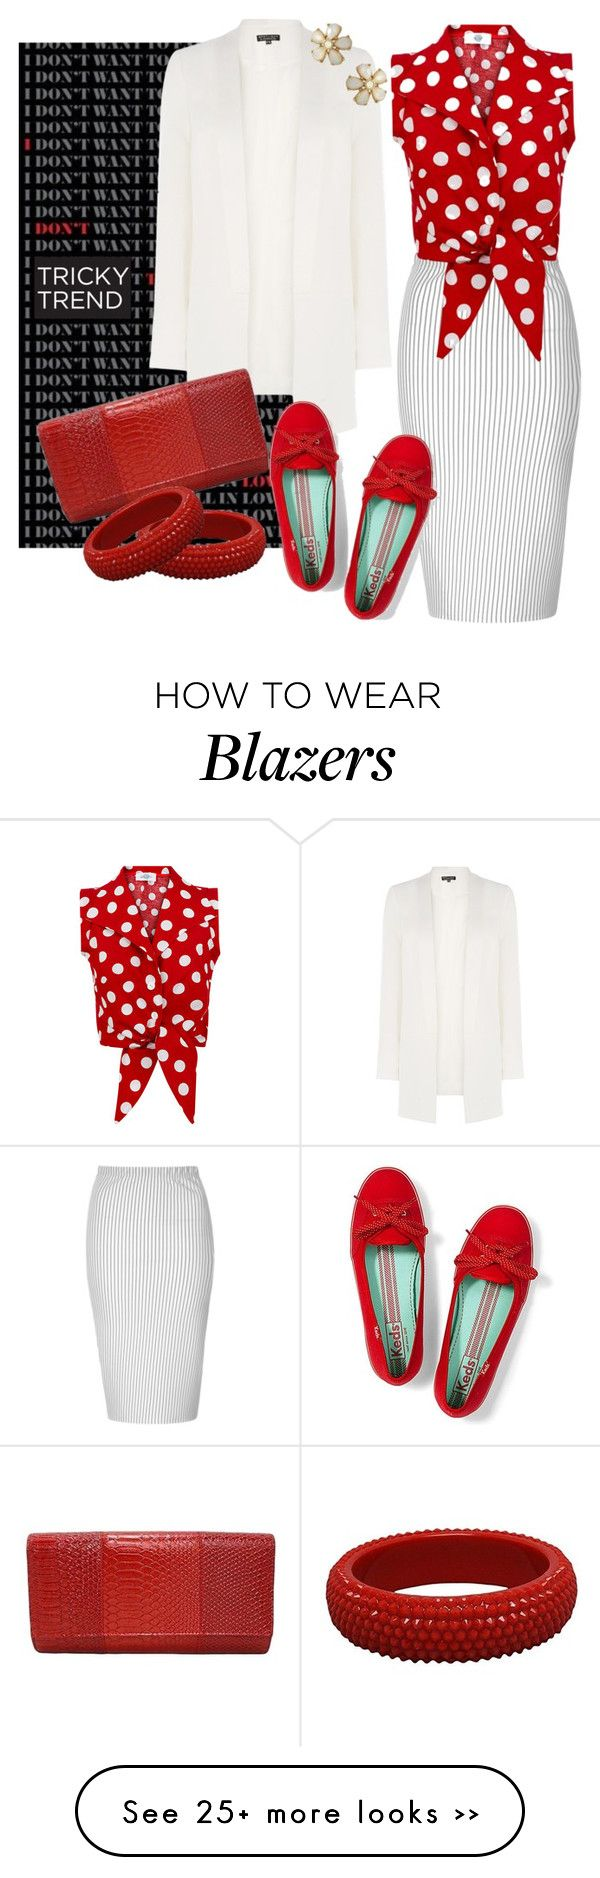 """Tricky"" by bbwraps on Polyvore featuring Glamorous, Warehouse, Keds, TrickyTrend, keds and FabulousFashionAccessories"